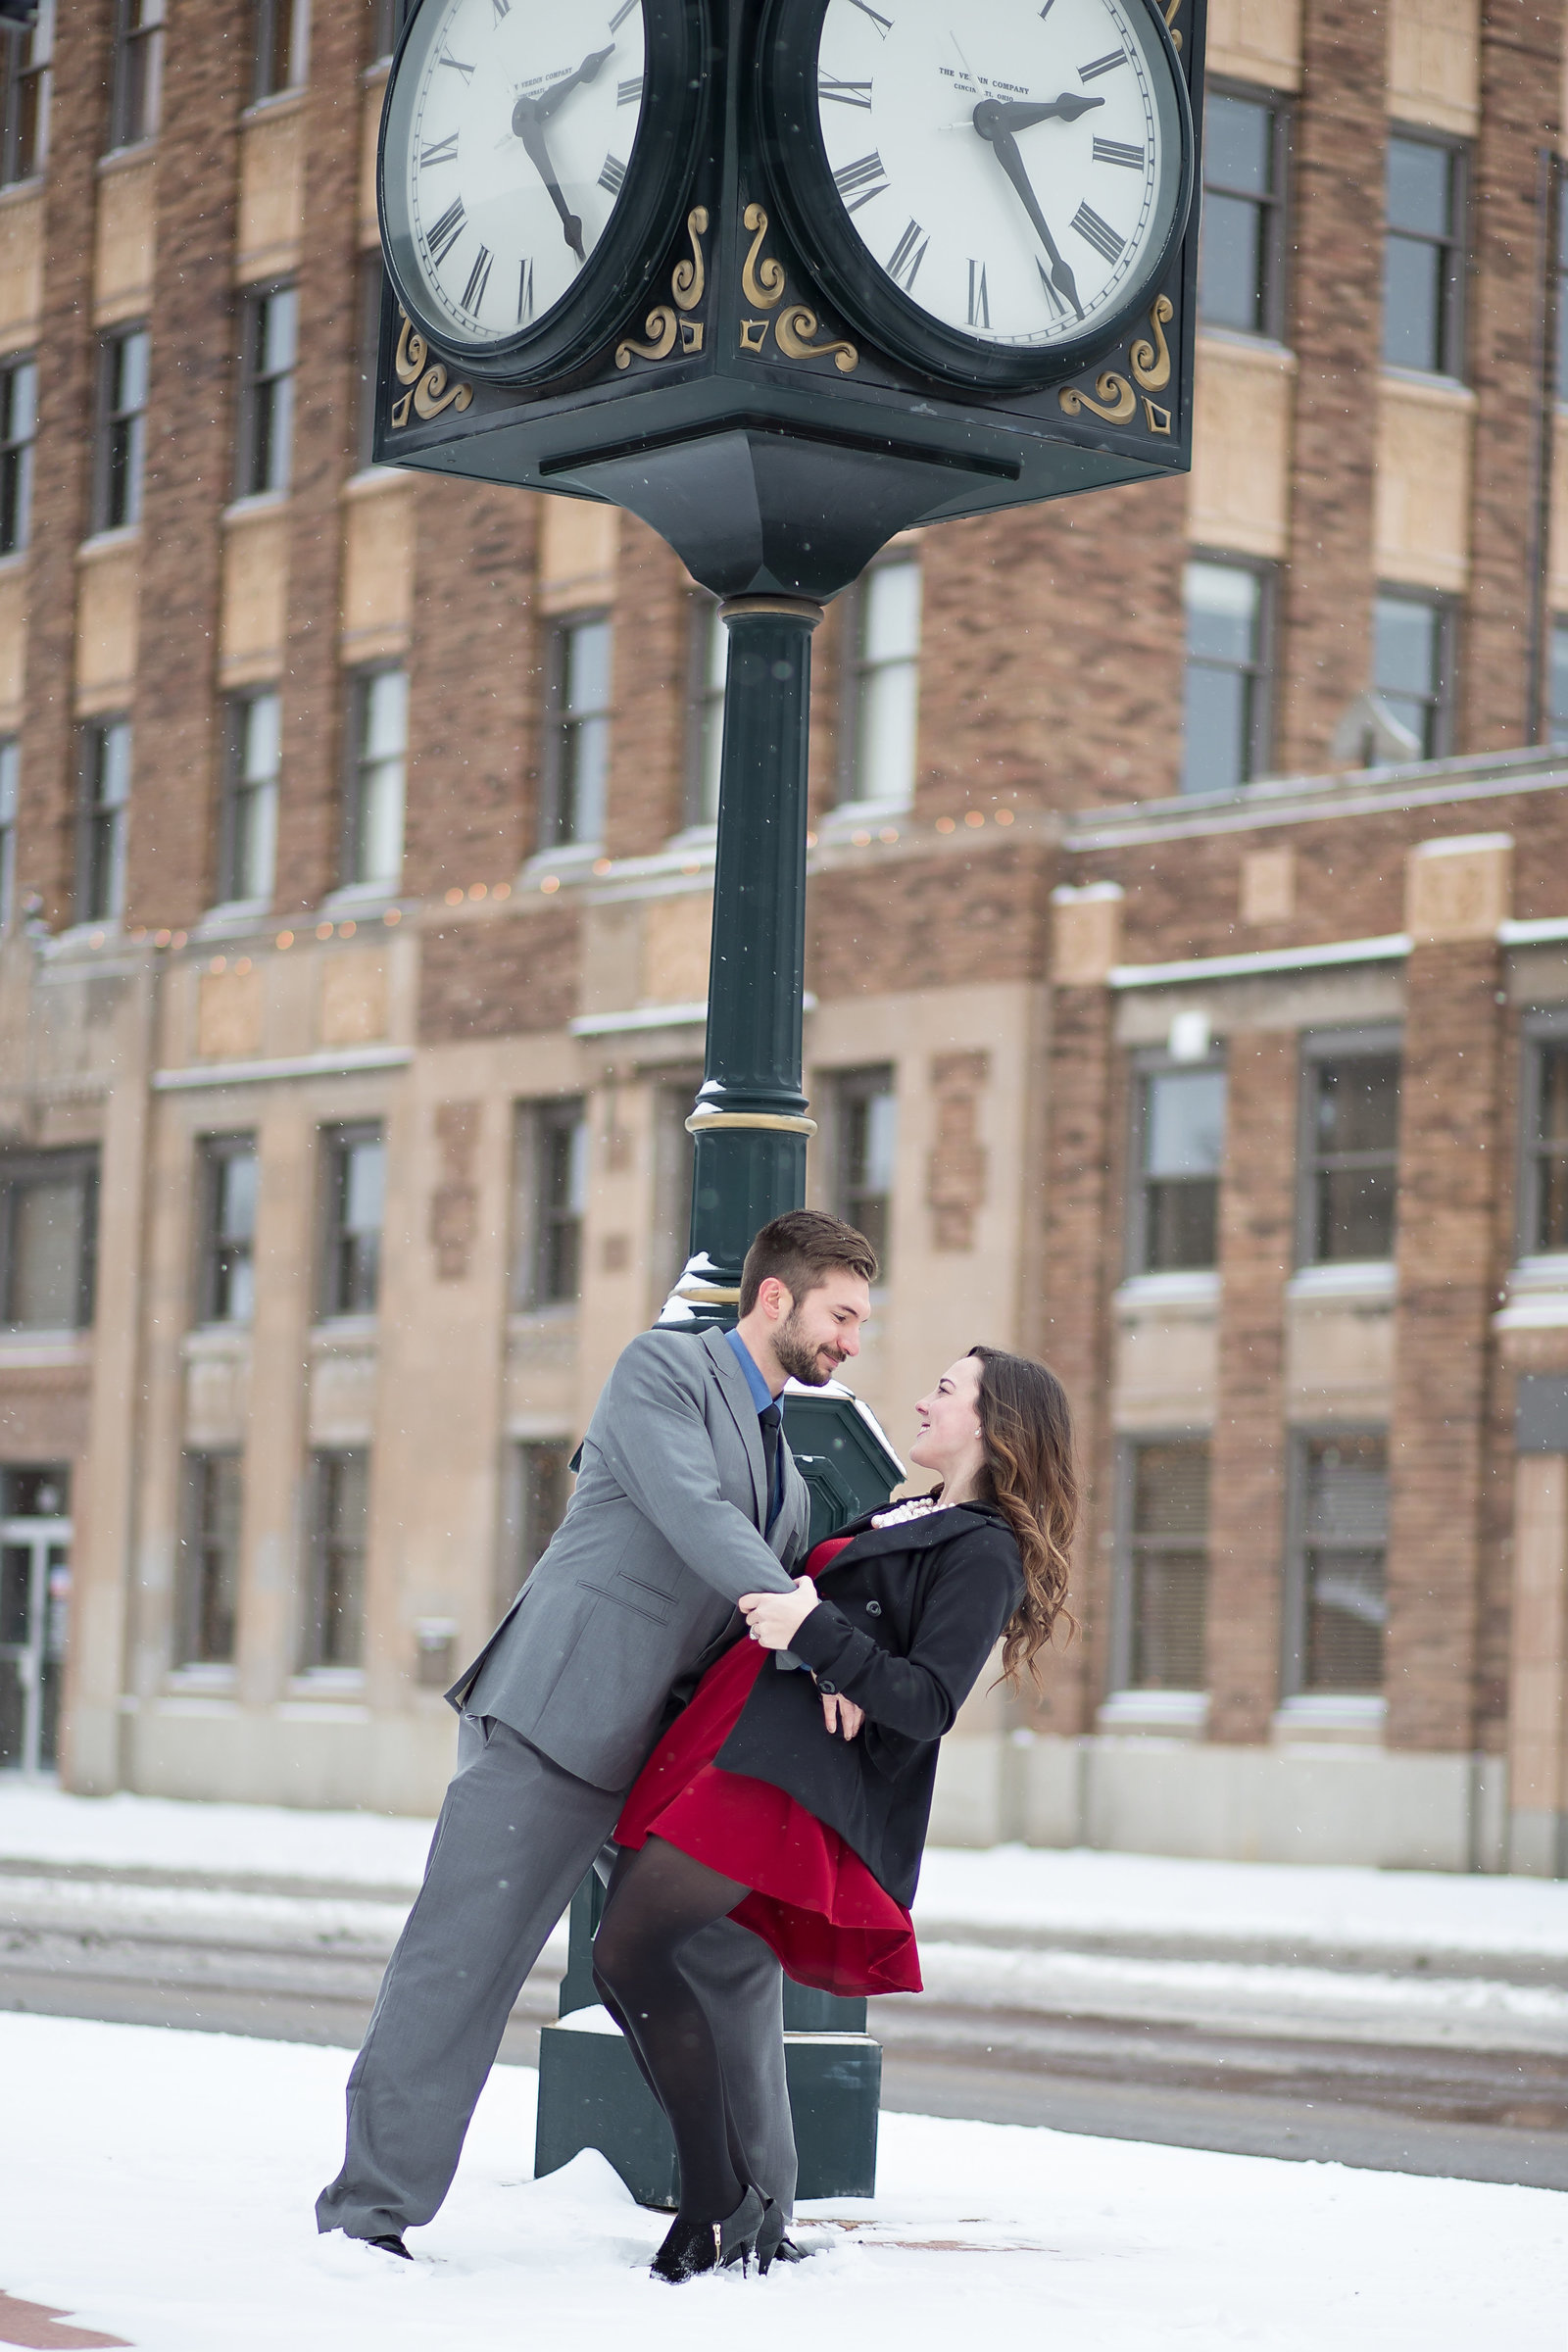 Downtown Iron Mountain Michigan Engagement & Wedding Photographer at http://www.photosbyciera.com